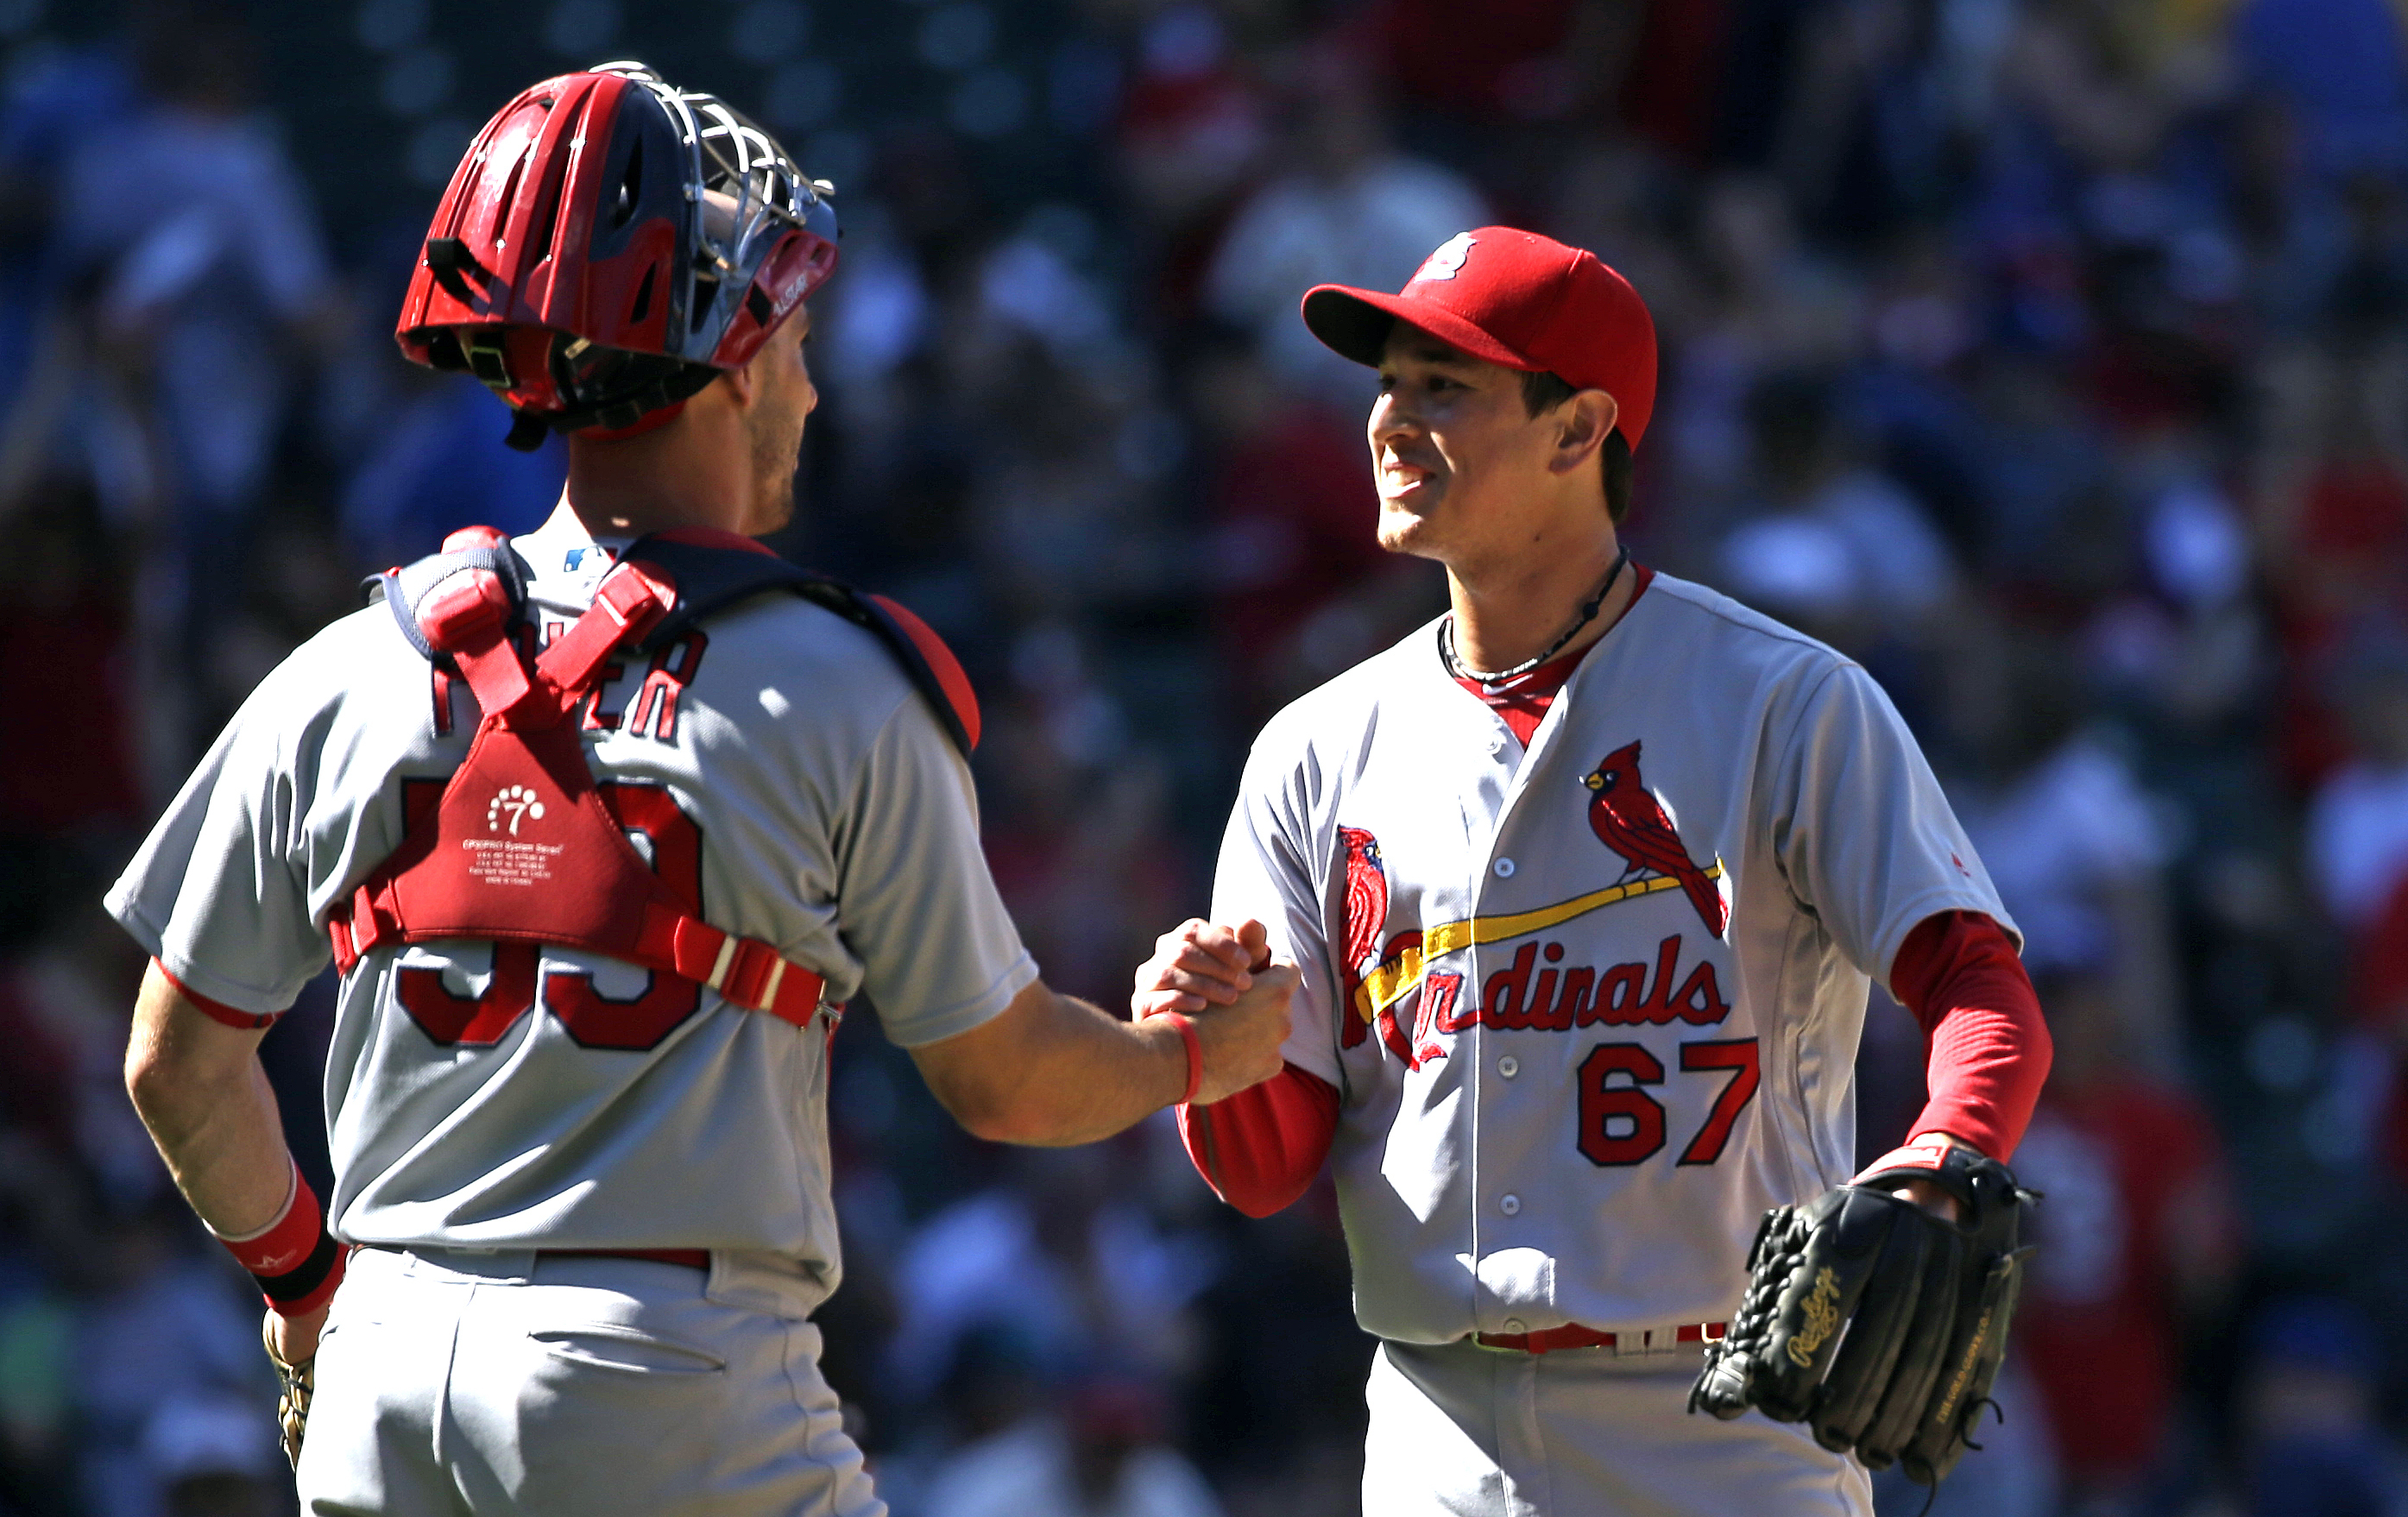 St. Louis Cardinals closing pitcher Matt Bowman (67) and catcher Eric Fryer share congratulations after they defeated the Seattle Mariners in a baseball game Sunday, June 26, 2016, in Seattle. (AP Photo/Elaine Thompson)